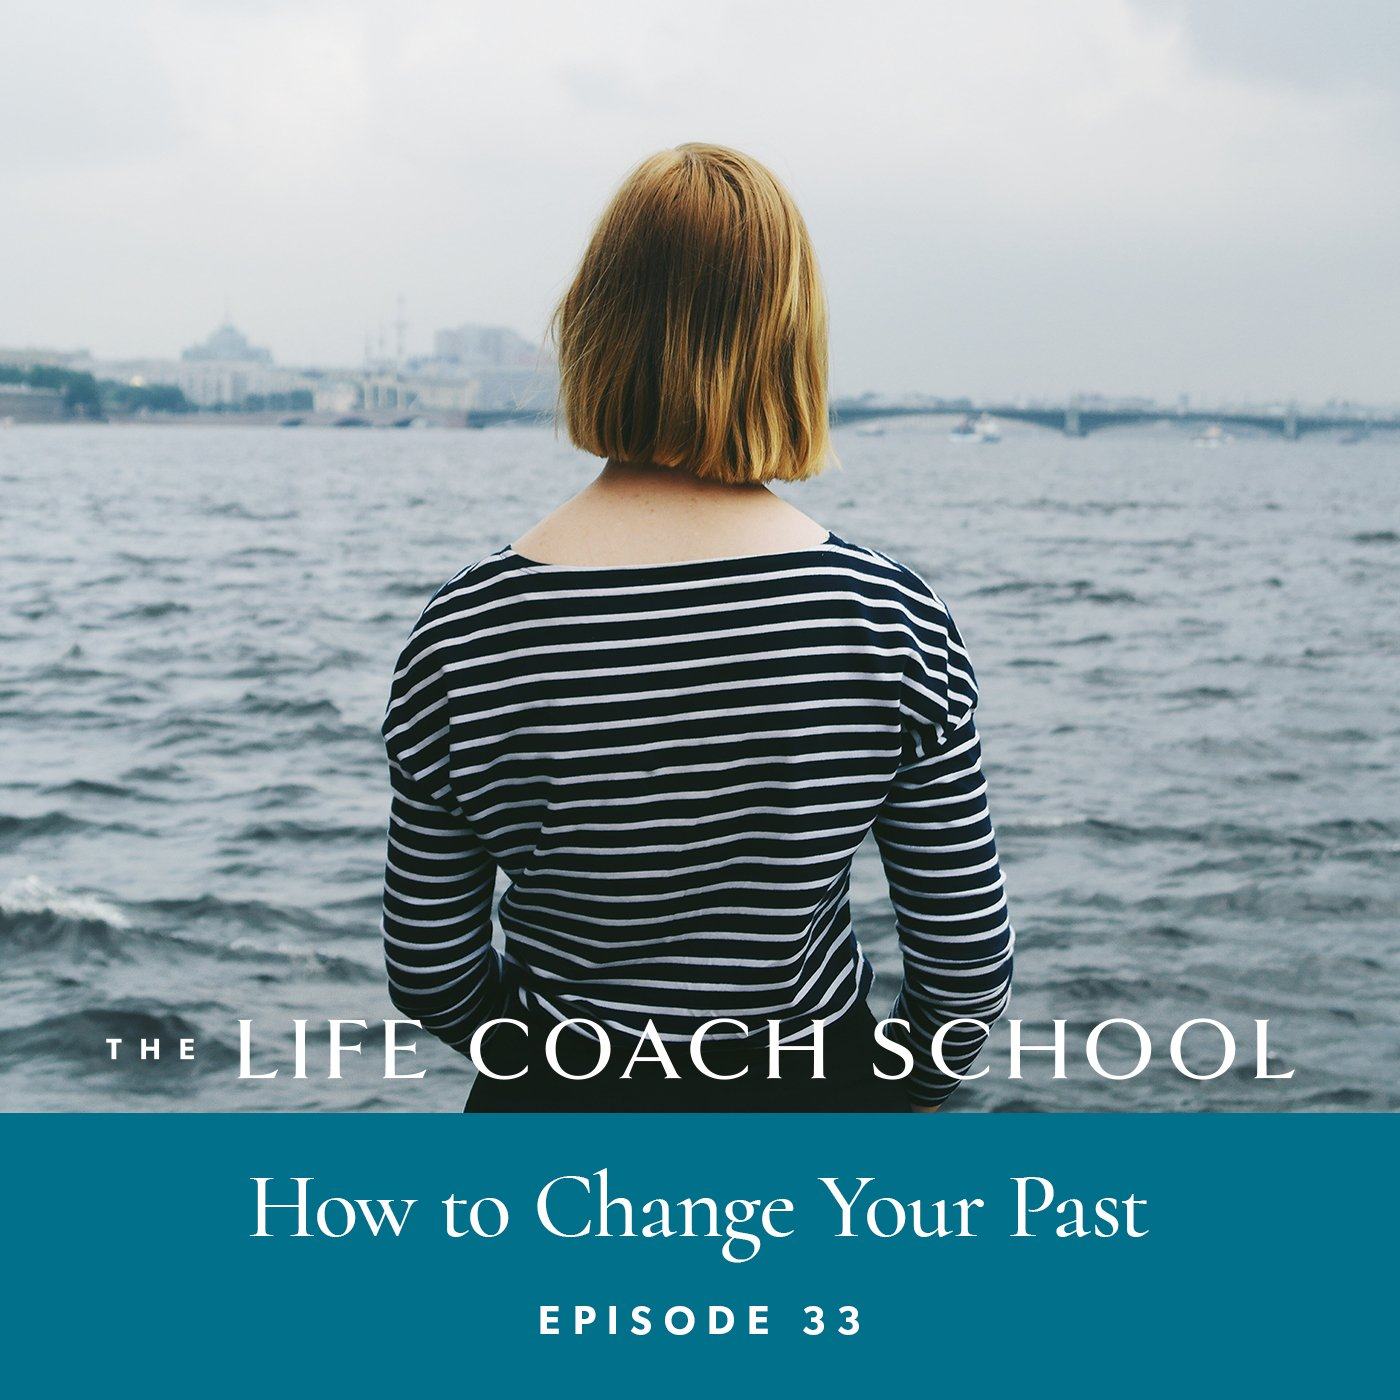 The Life Coach School Podcast with Brooke Castillo | Episode 33 | How to Change Your Past